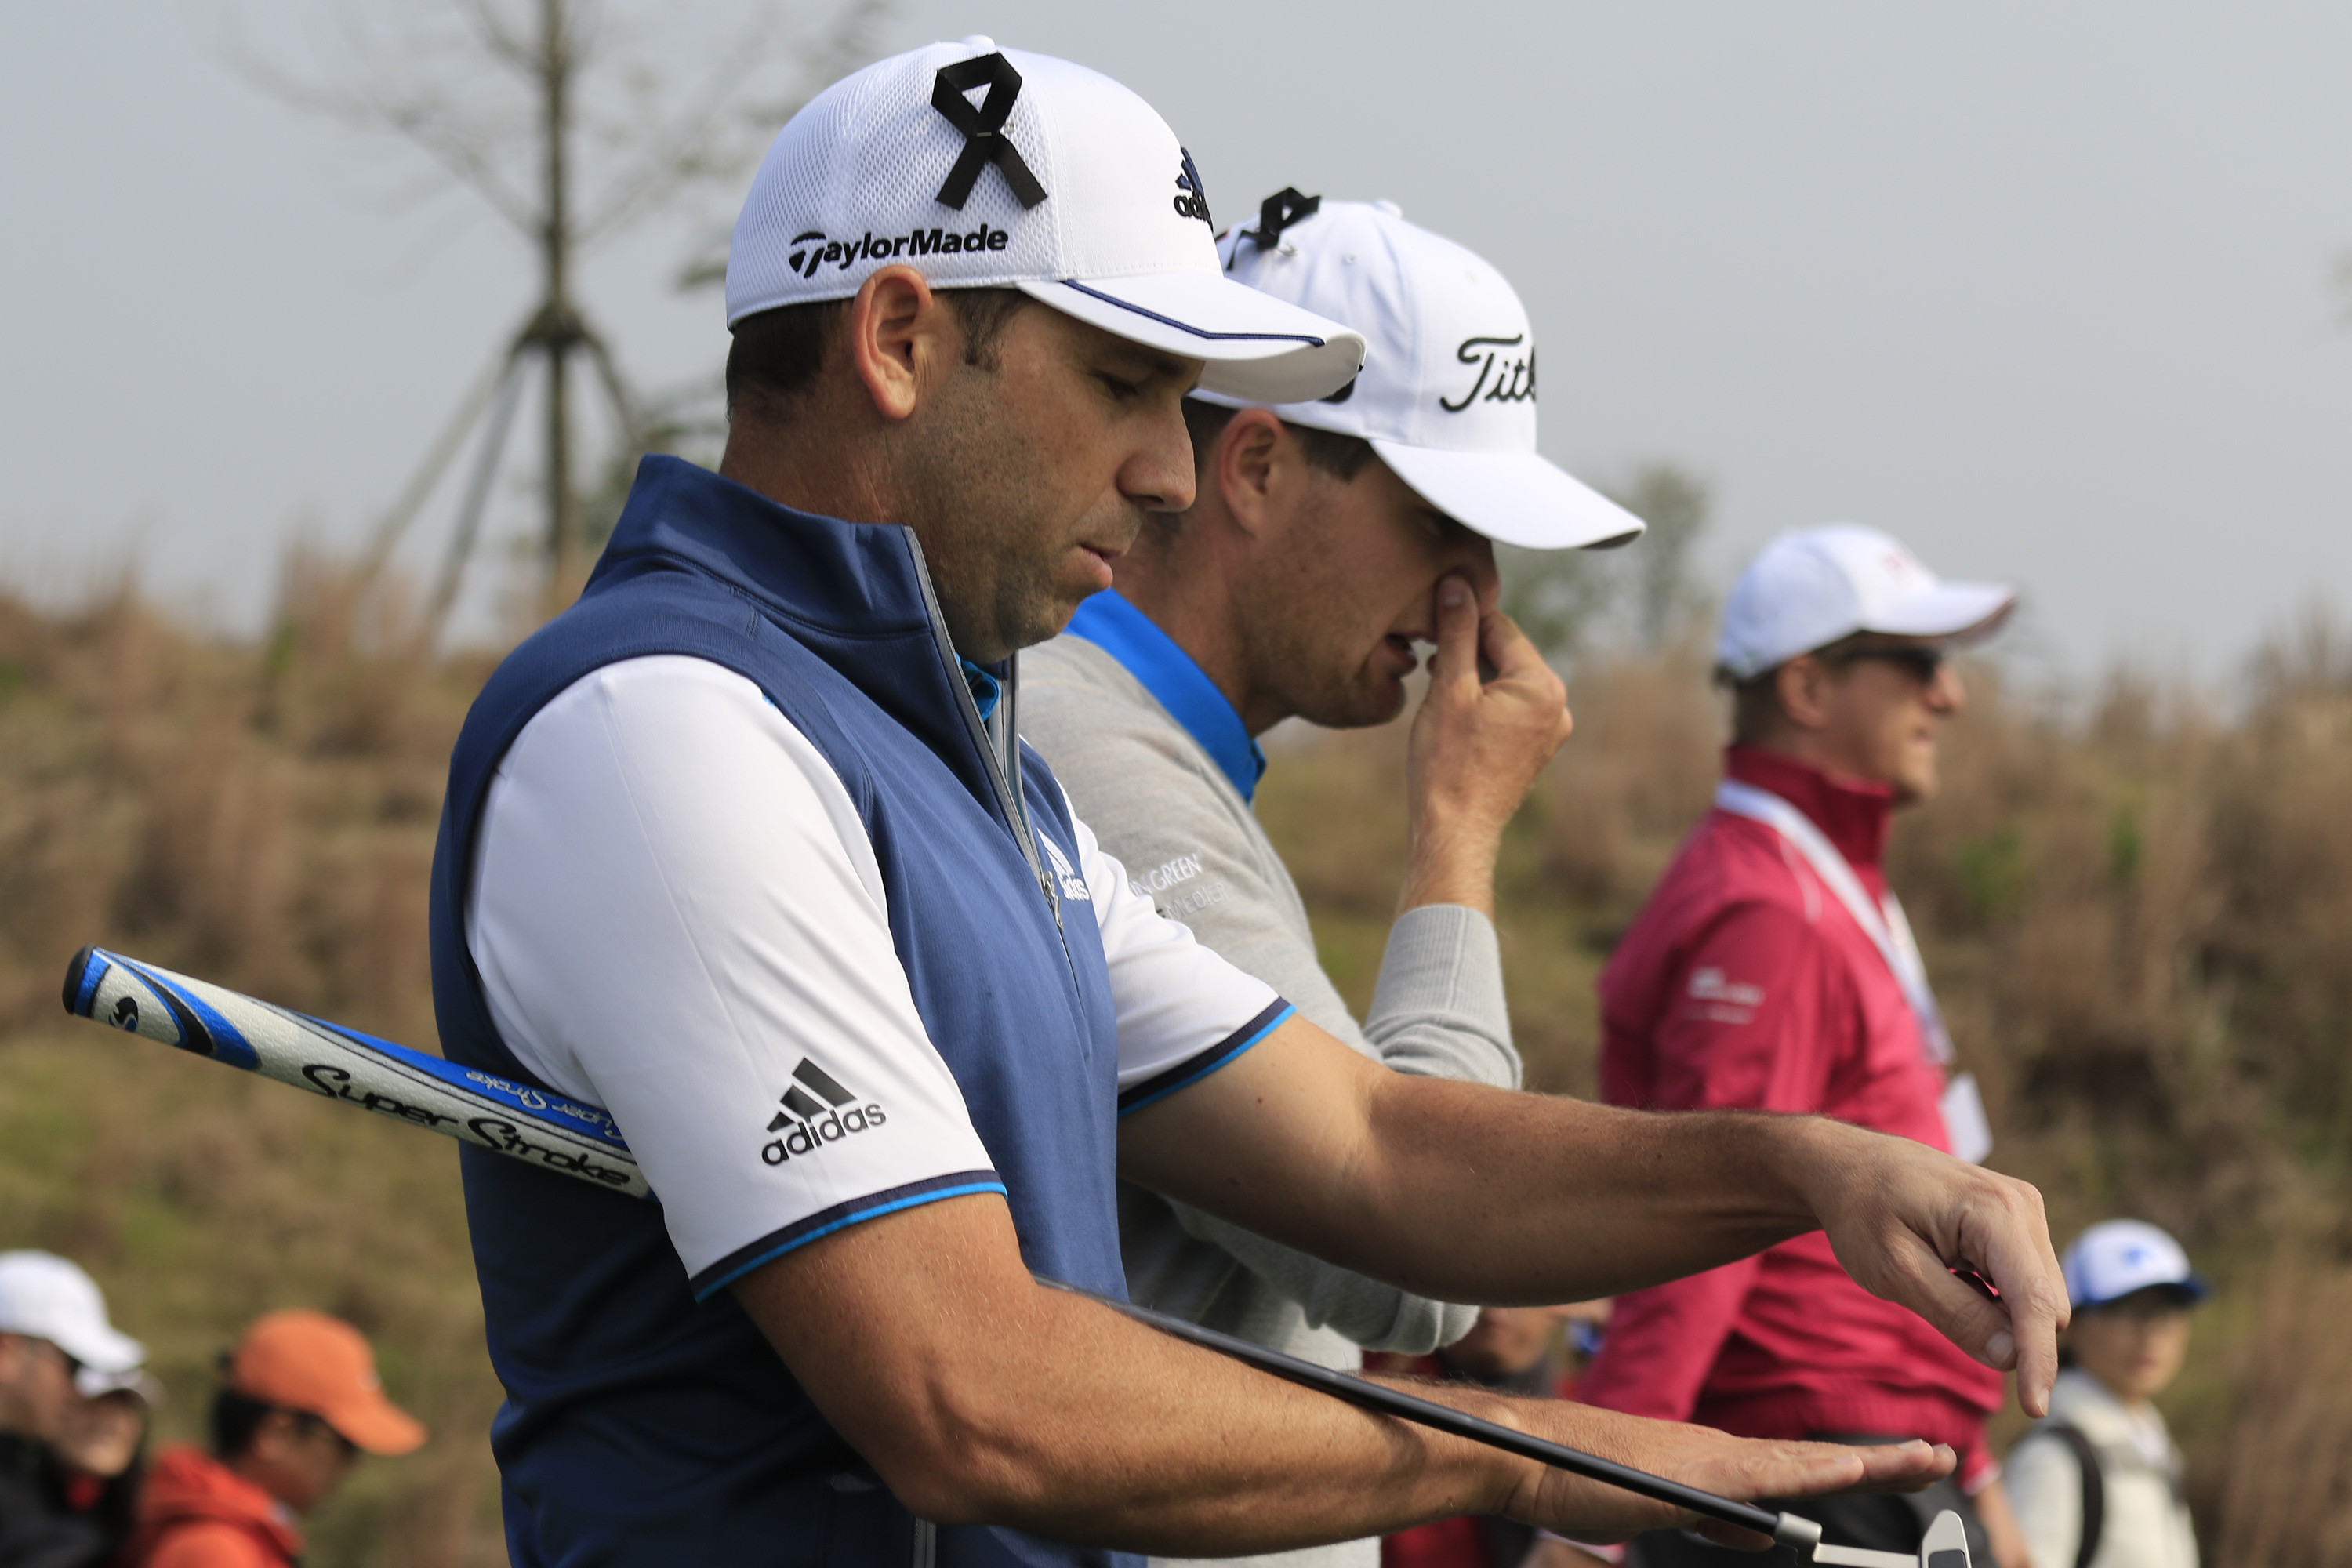 Sergio Garcia of Spain, left, and Lucas Bjerregaard of Denmark, center, both wear black ribbons on their hats to mourn for the victims killed in Friday's attacks in Paris, France.